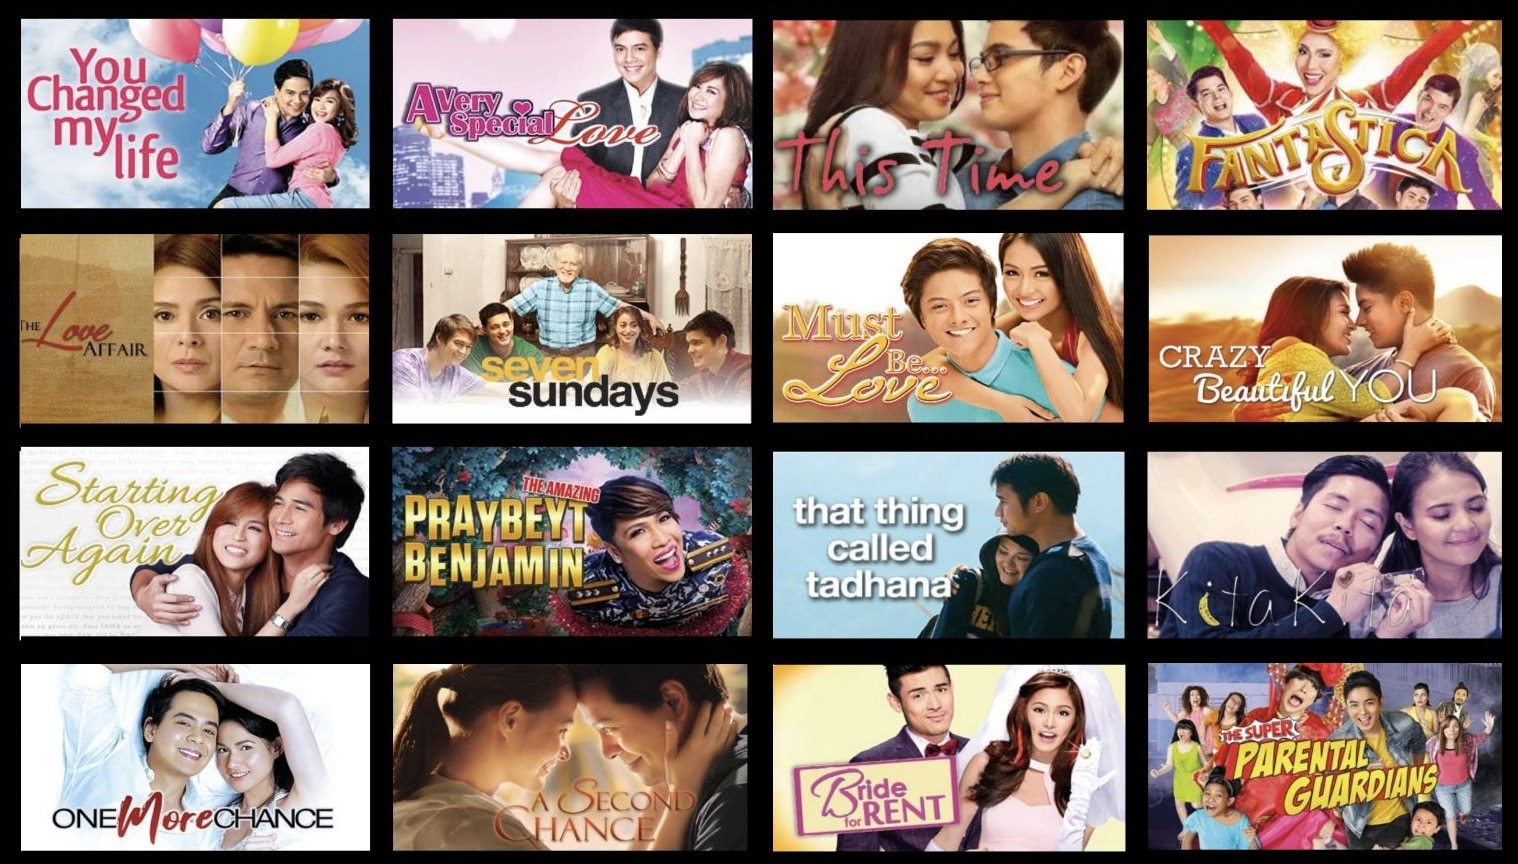 iWant triples movie viewership, manages streaming traffic following NTC request